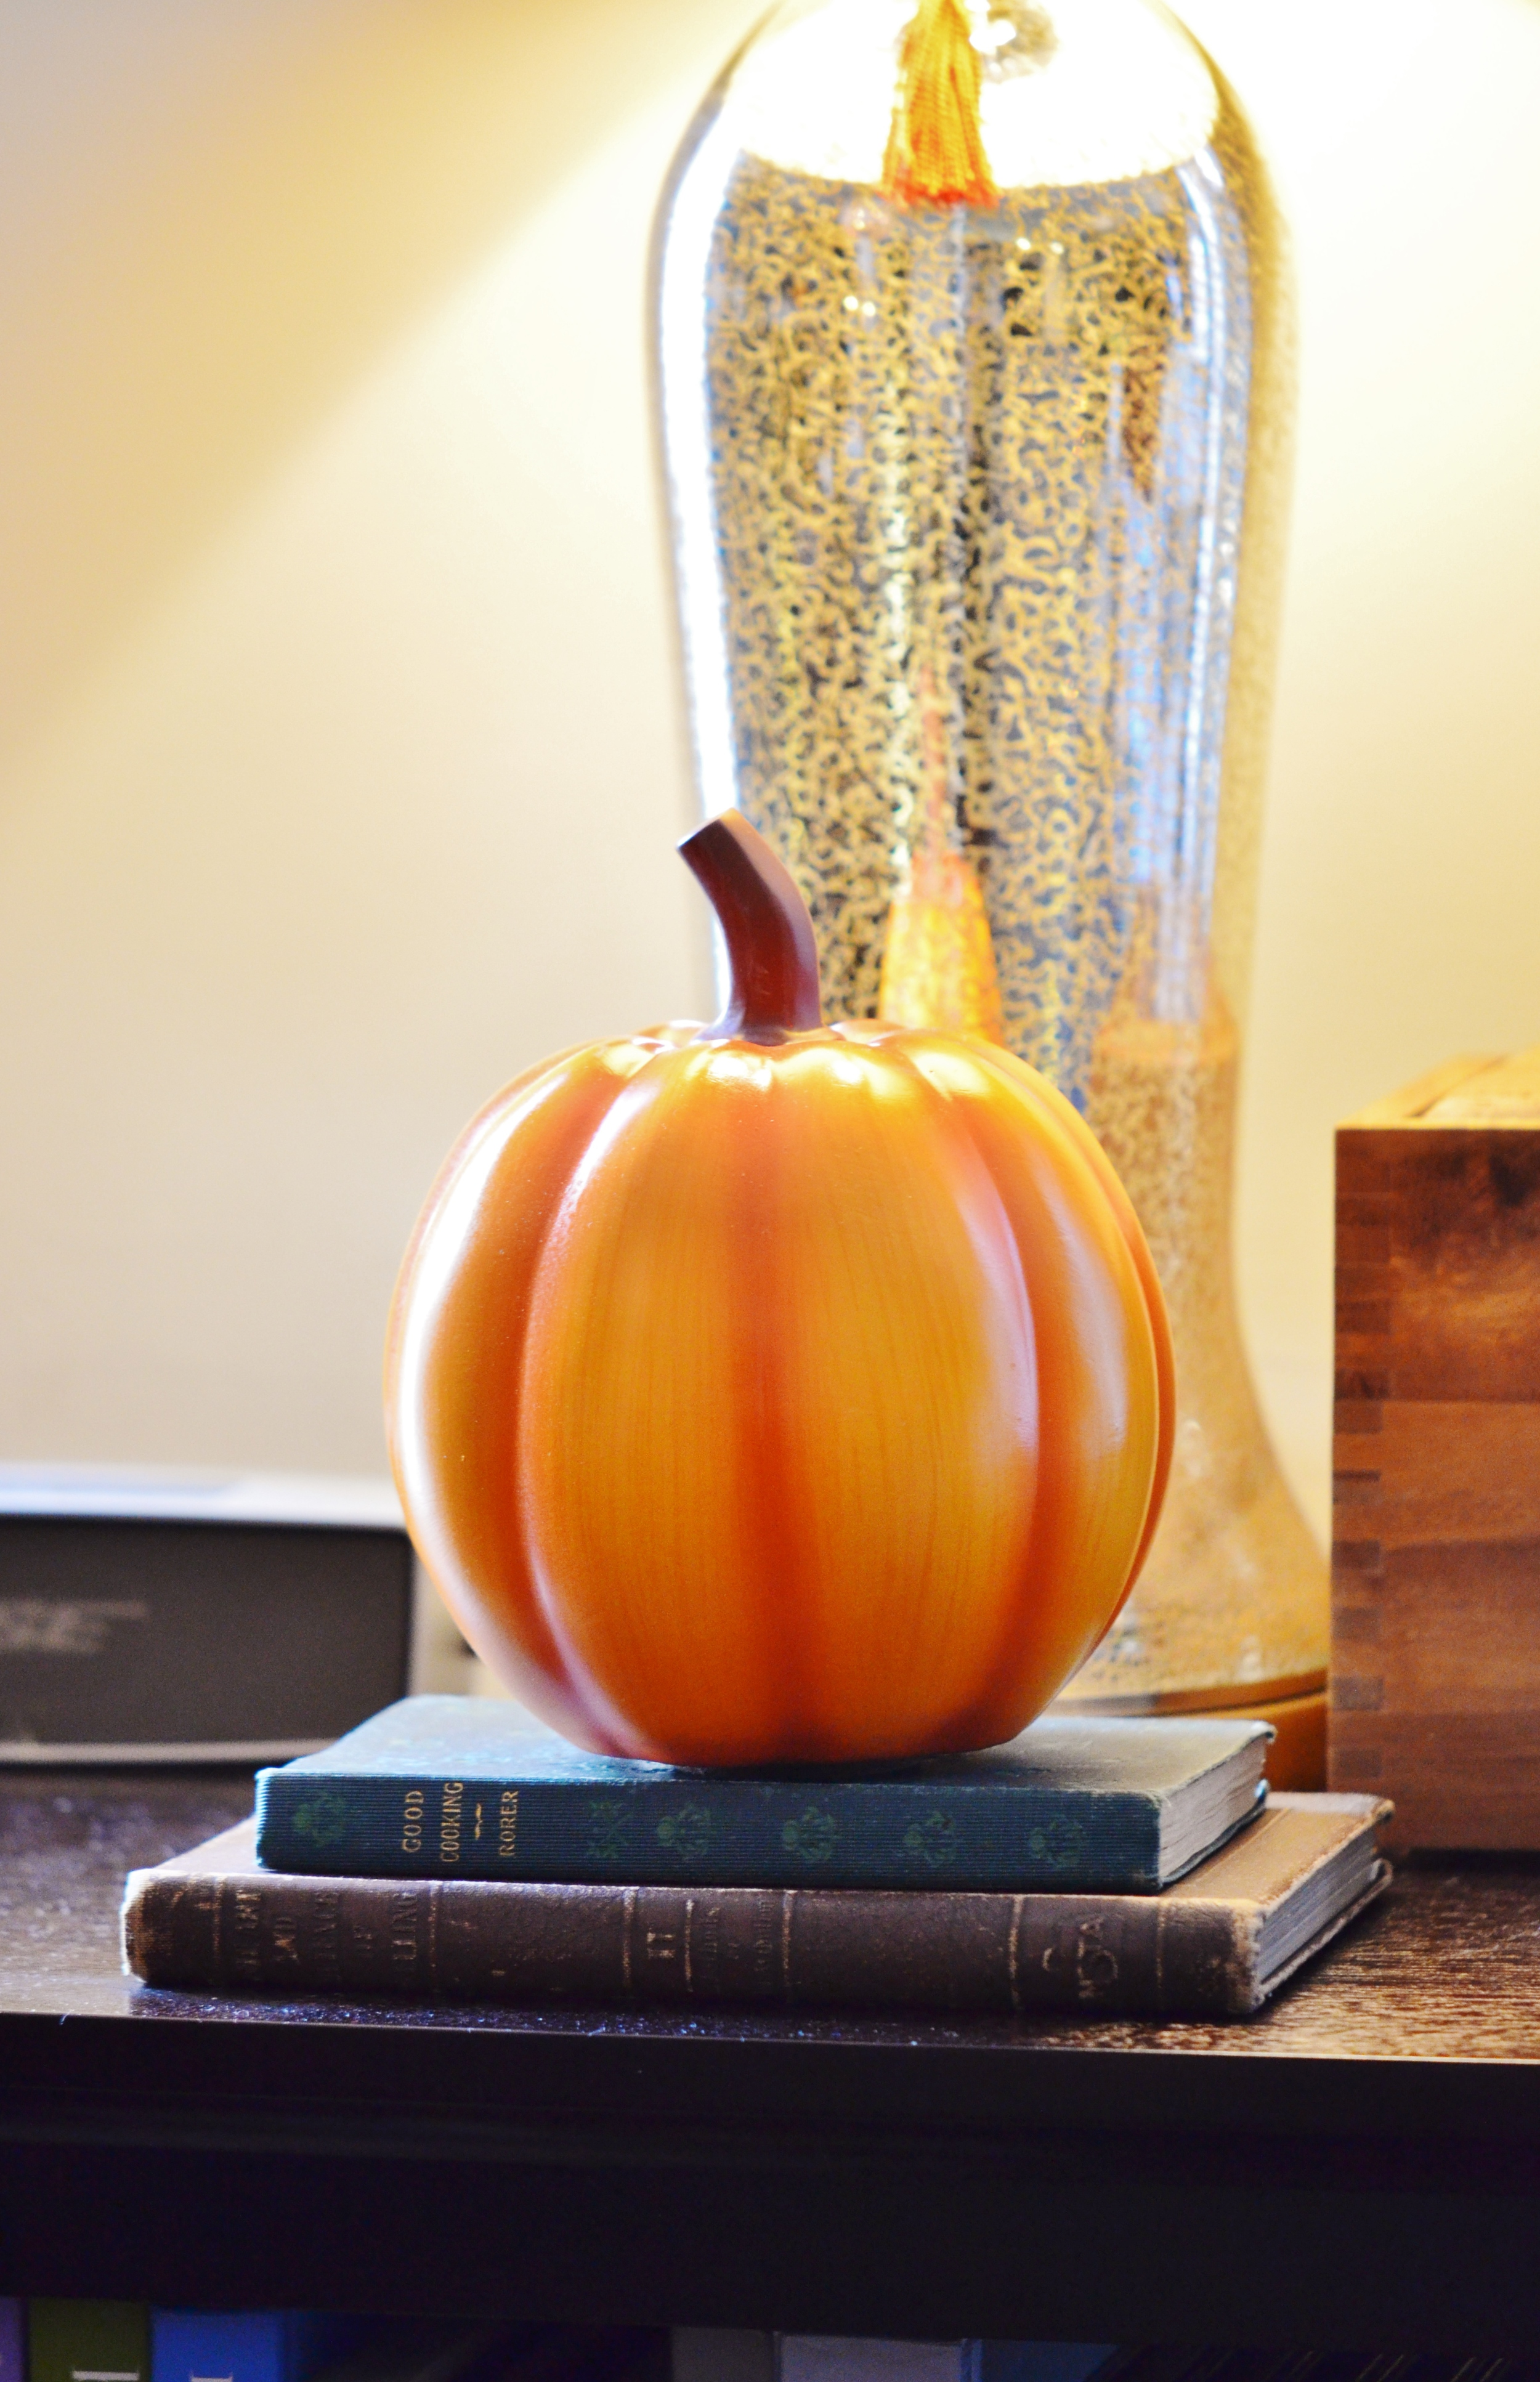 Another simple pumpkin set atop a small pile of antique cookbooks on a side table in the dining room.  Small pops of color throughout a space will keep the flow of your theme consistant without being overpowering.